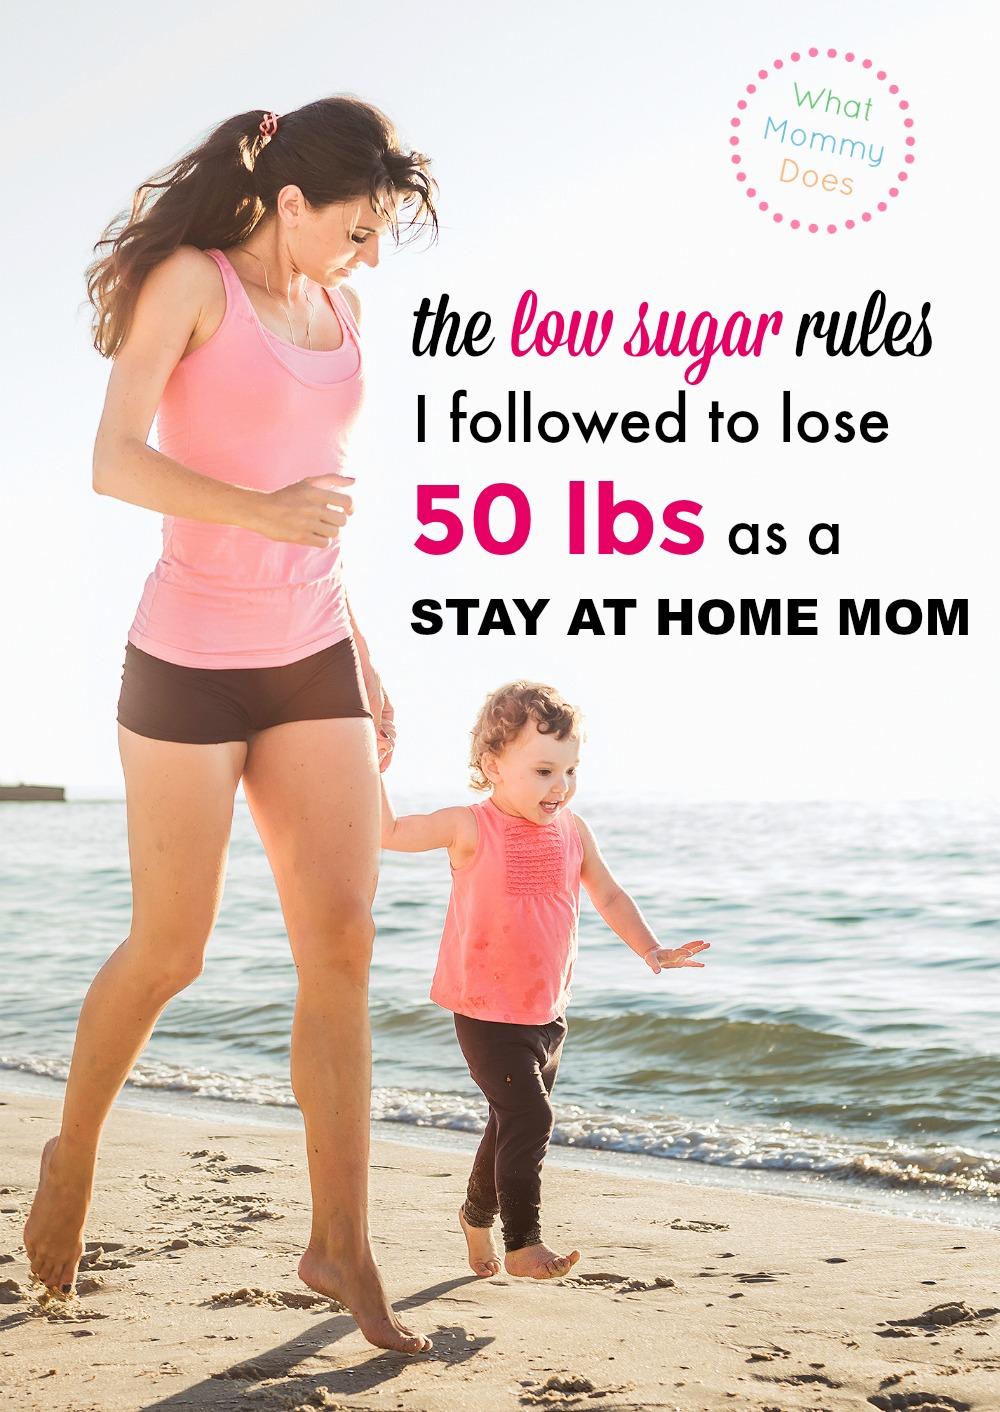 I followed this clean eating, low sugar diet plan on my way to losing 50 lbs - the weight came off pretty easily when I stuck to this philosophy! It's easy for moms to lose track of healthy eating when the kids are eating high fat, carb filled things to fuel their growing bodies. Get your body back with this philosophy regarding low sugar foods & also treats like cheat items. | weight loss ideas, baby weight